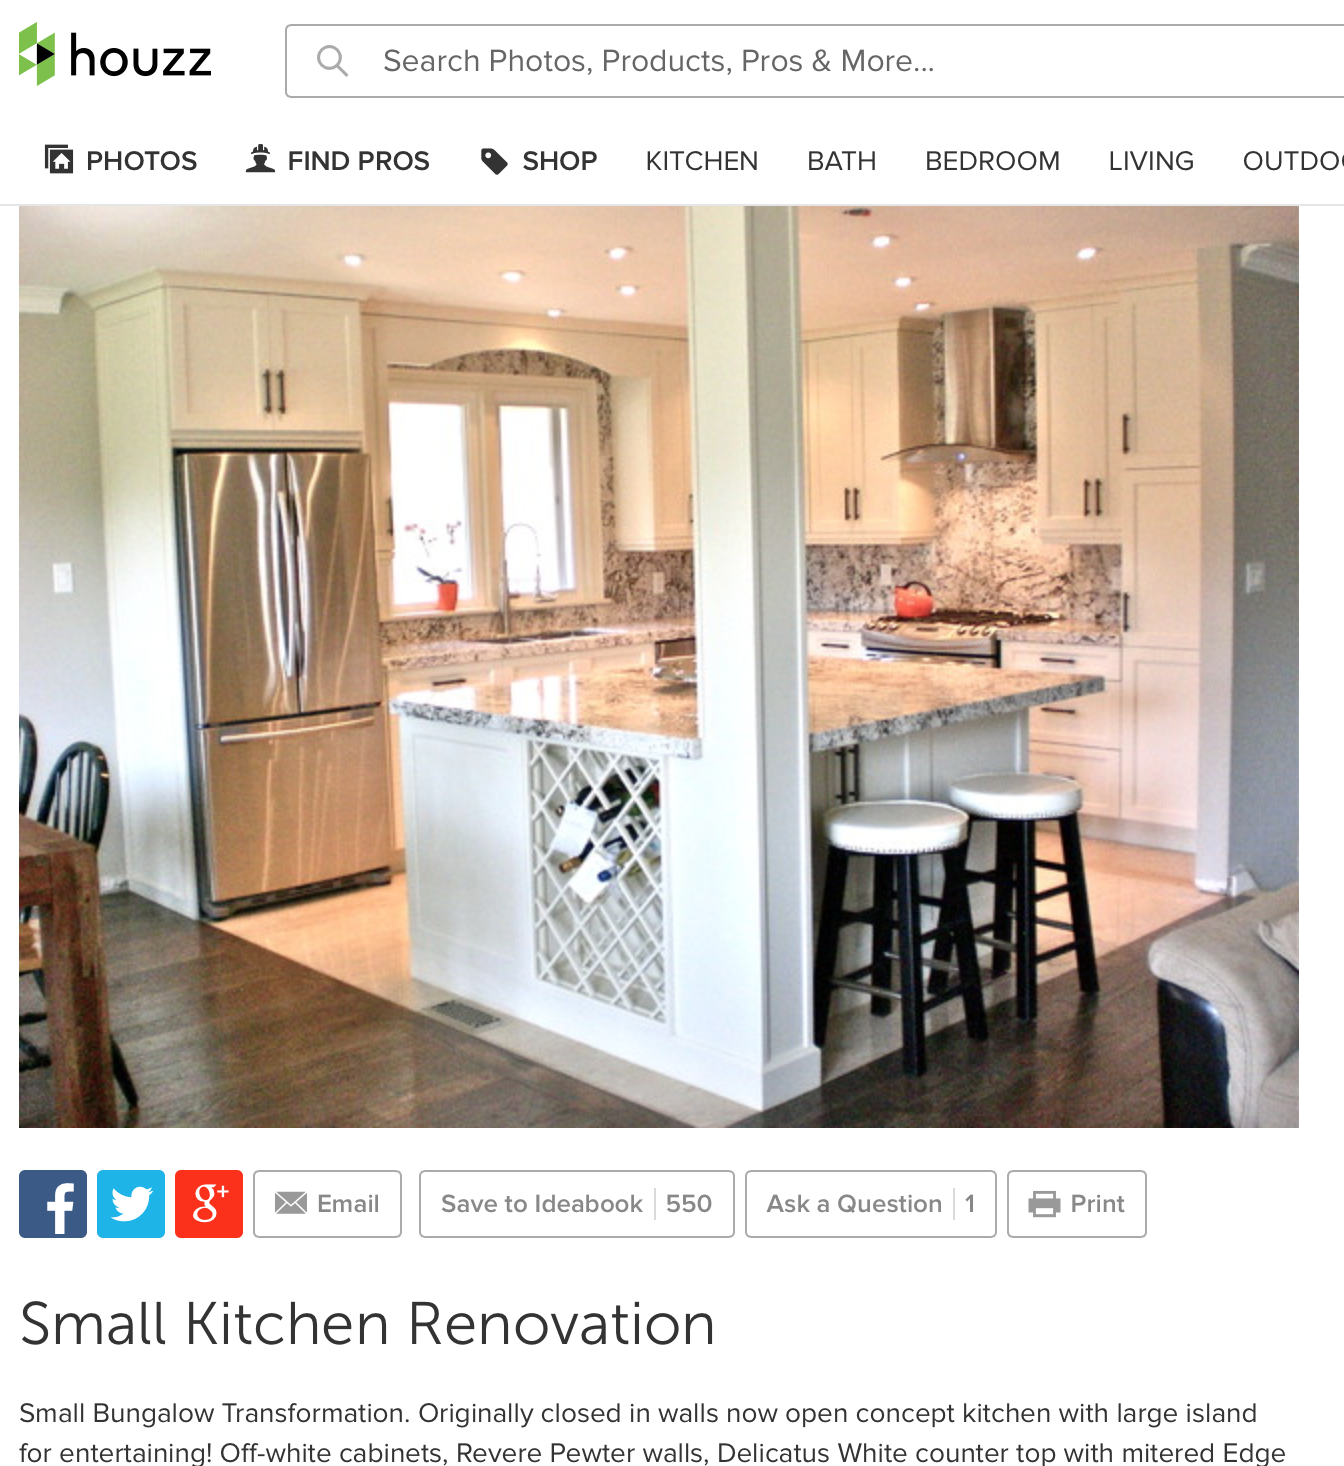 Traditional Open Concept Kitchen: This Is IT!!! The Small Kitchen Reno I Have Been Looking